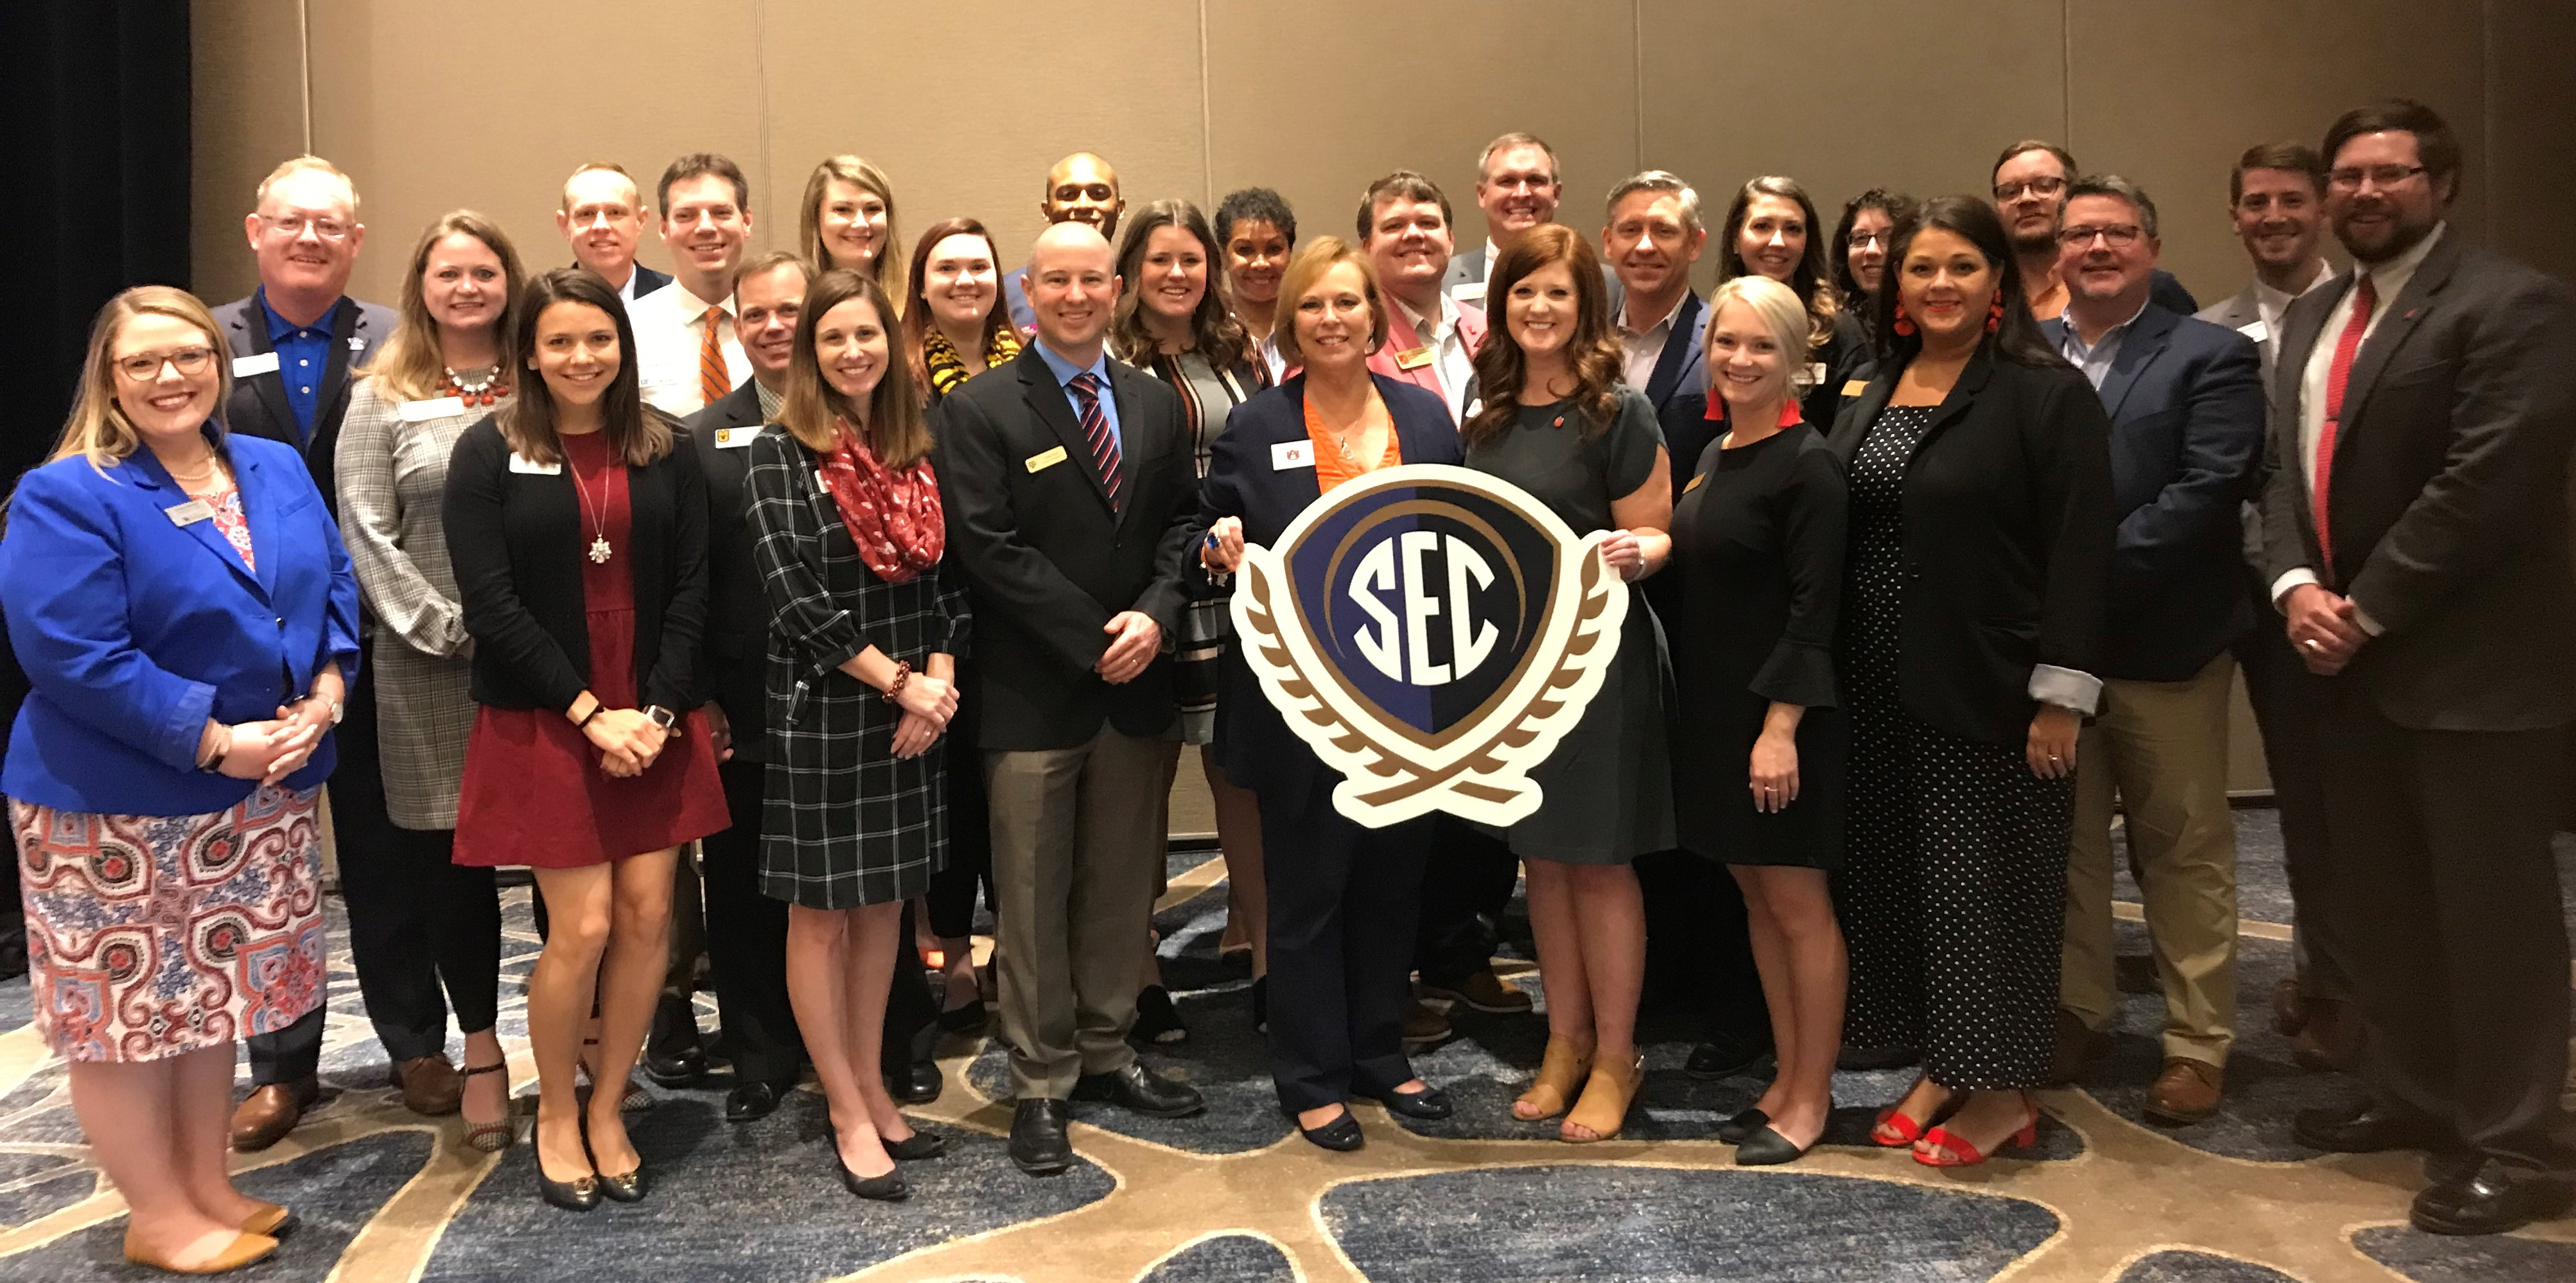 Hundreds attend SEC College Tour in Virginia and Maryland